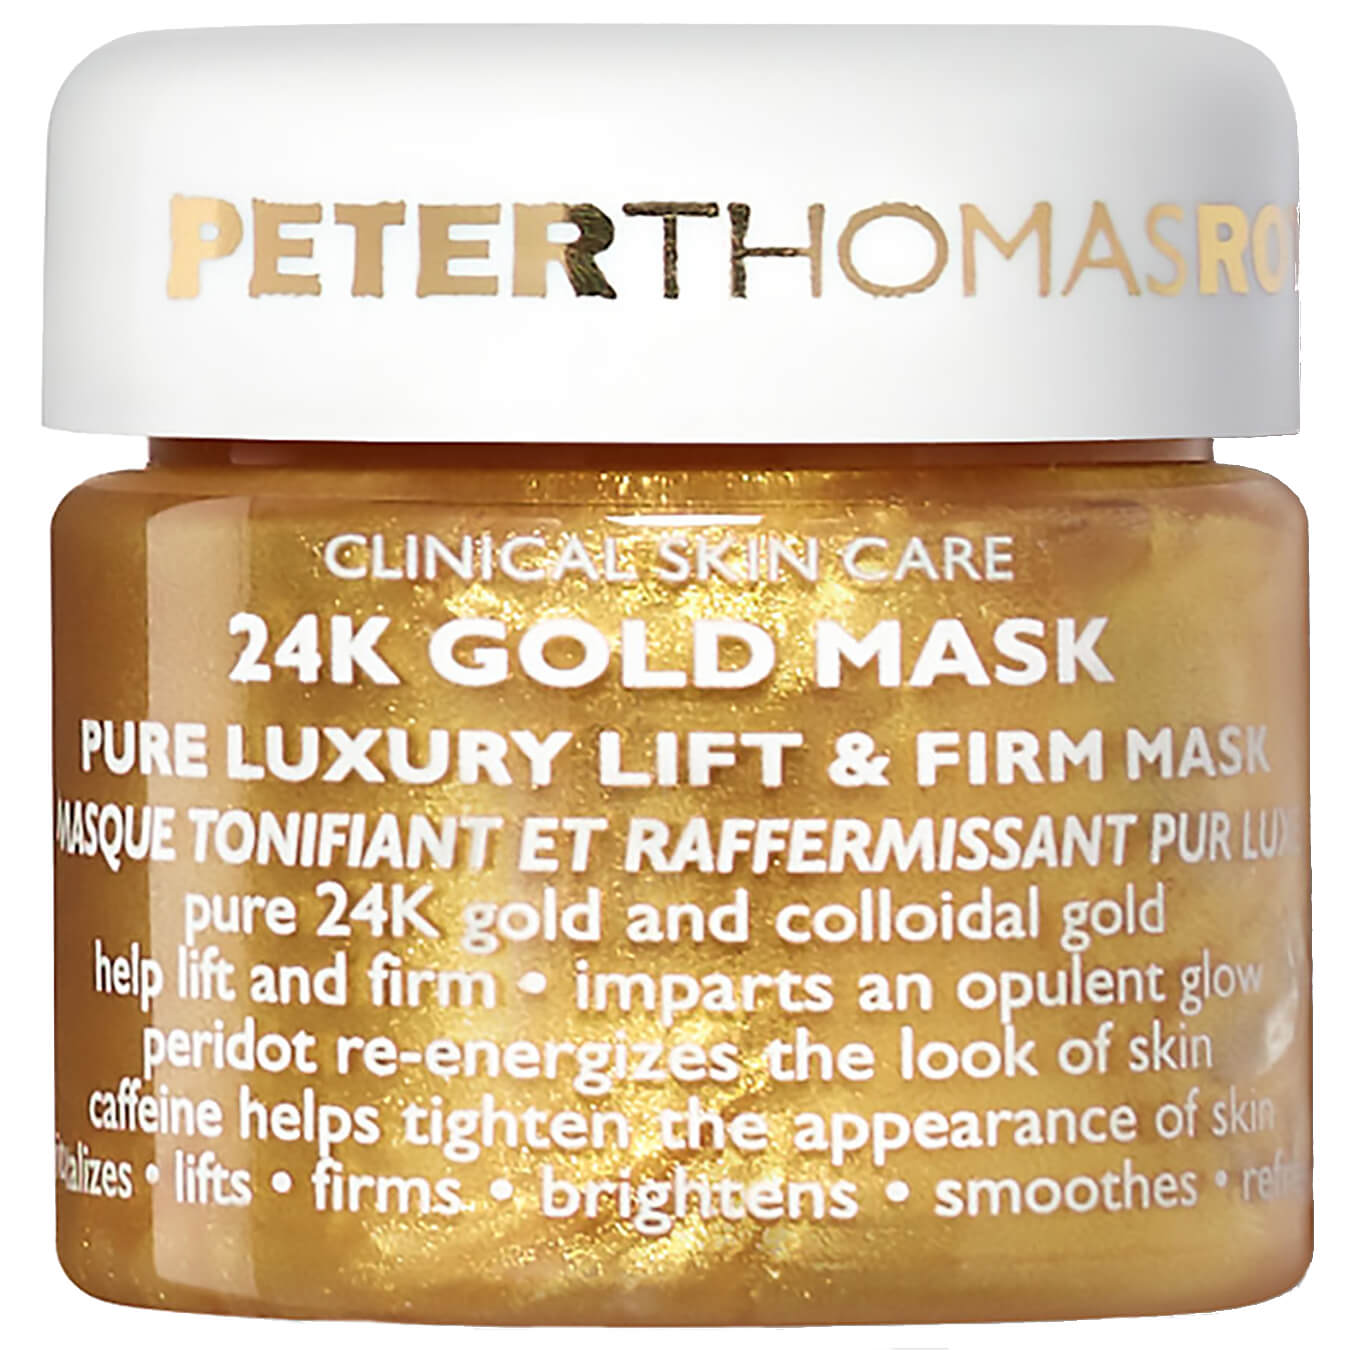 peter roth gold mask